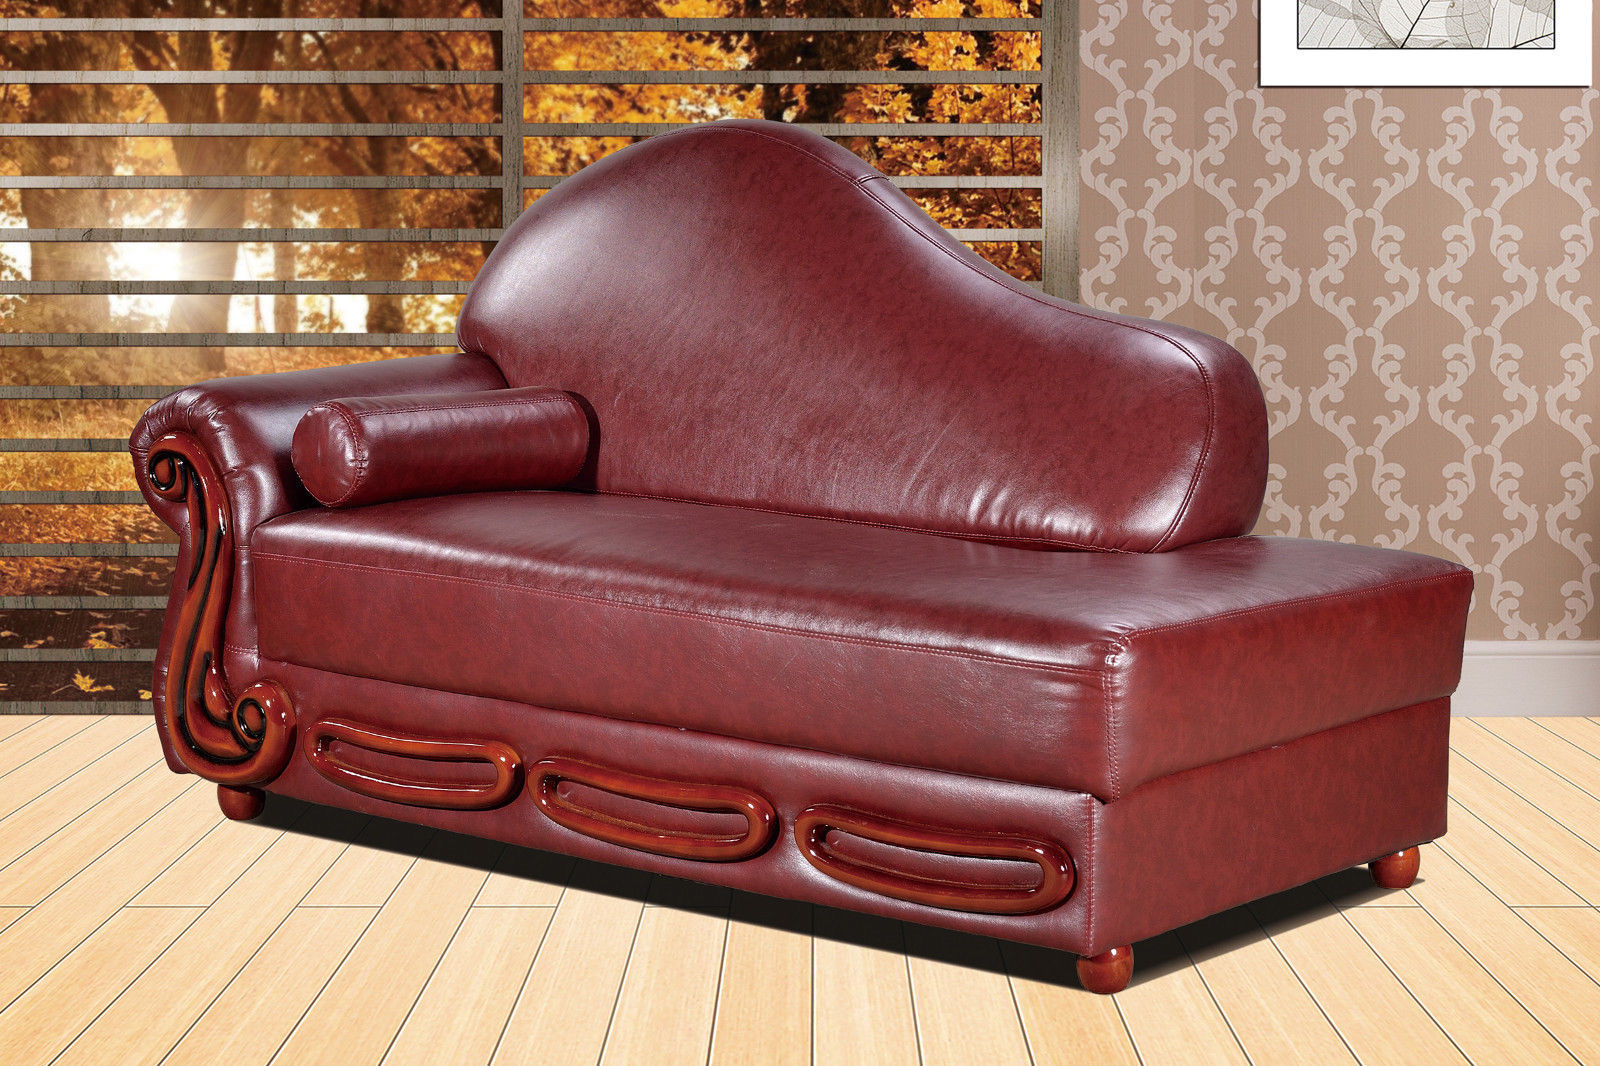 Meridian 632 Bella Living Room Chaise in Burgundy Bonded Leather Traditional